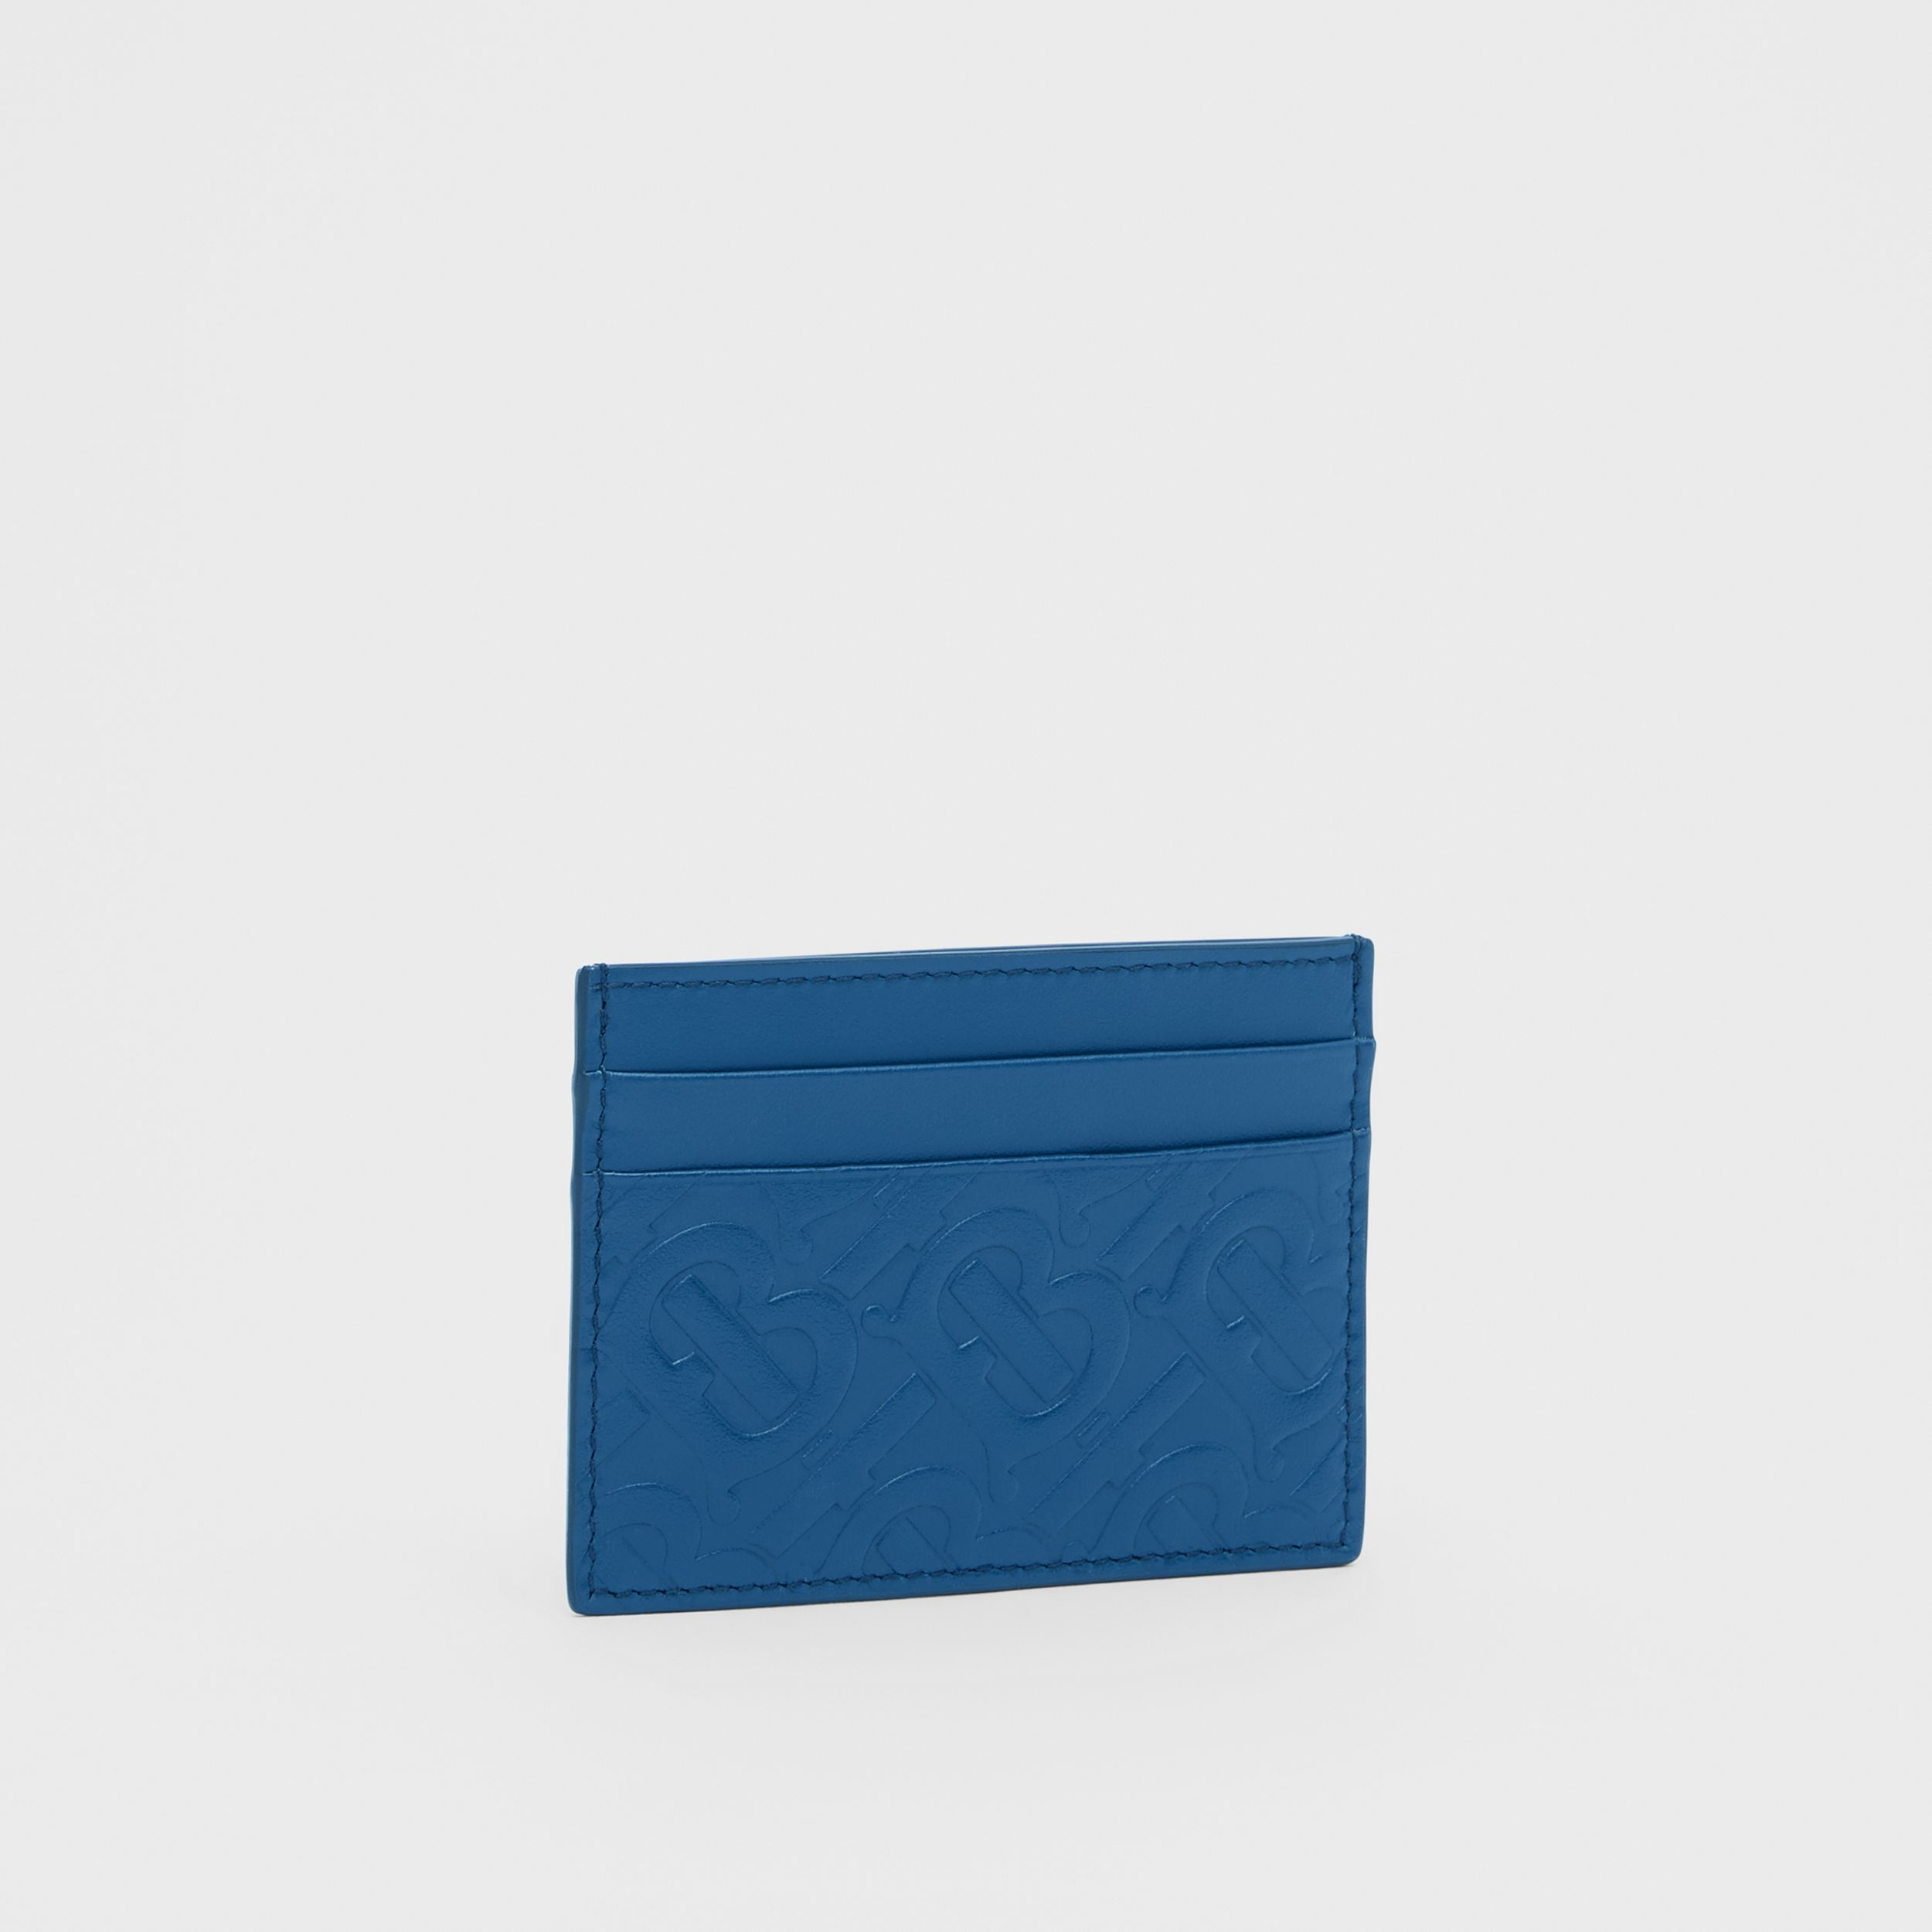 Monogram Leather Card Case in Pale Canvas Blue - Men | Burberry - 4